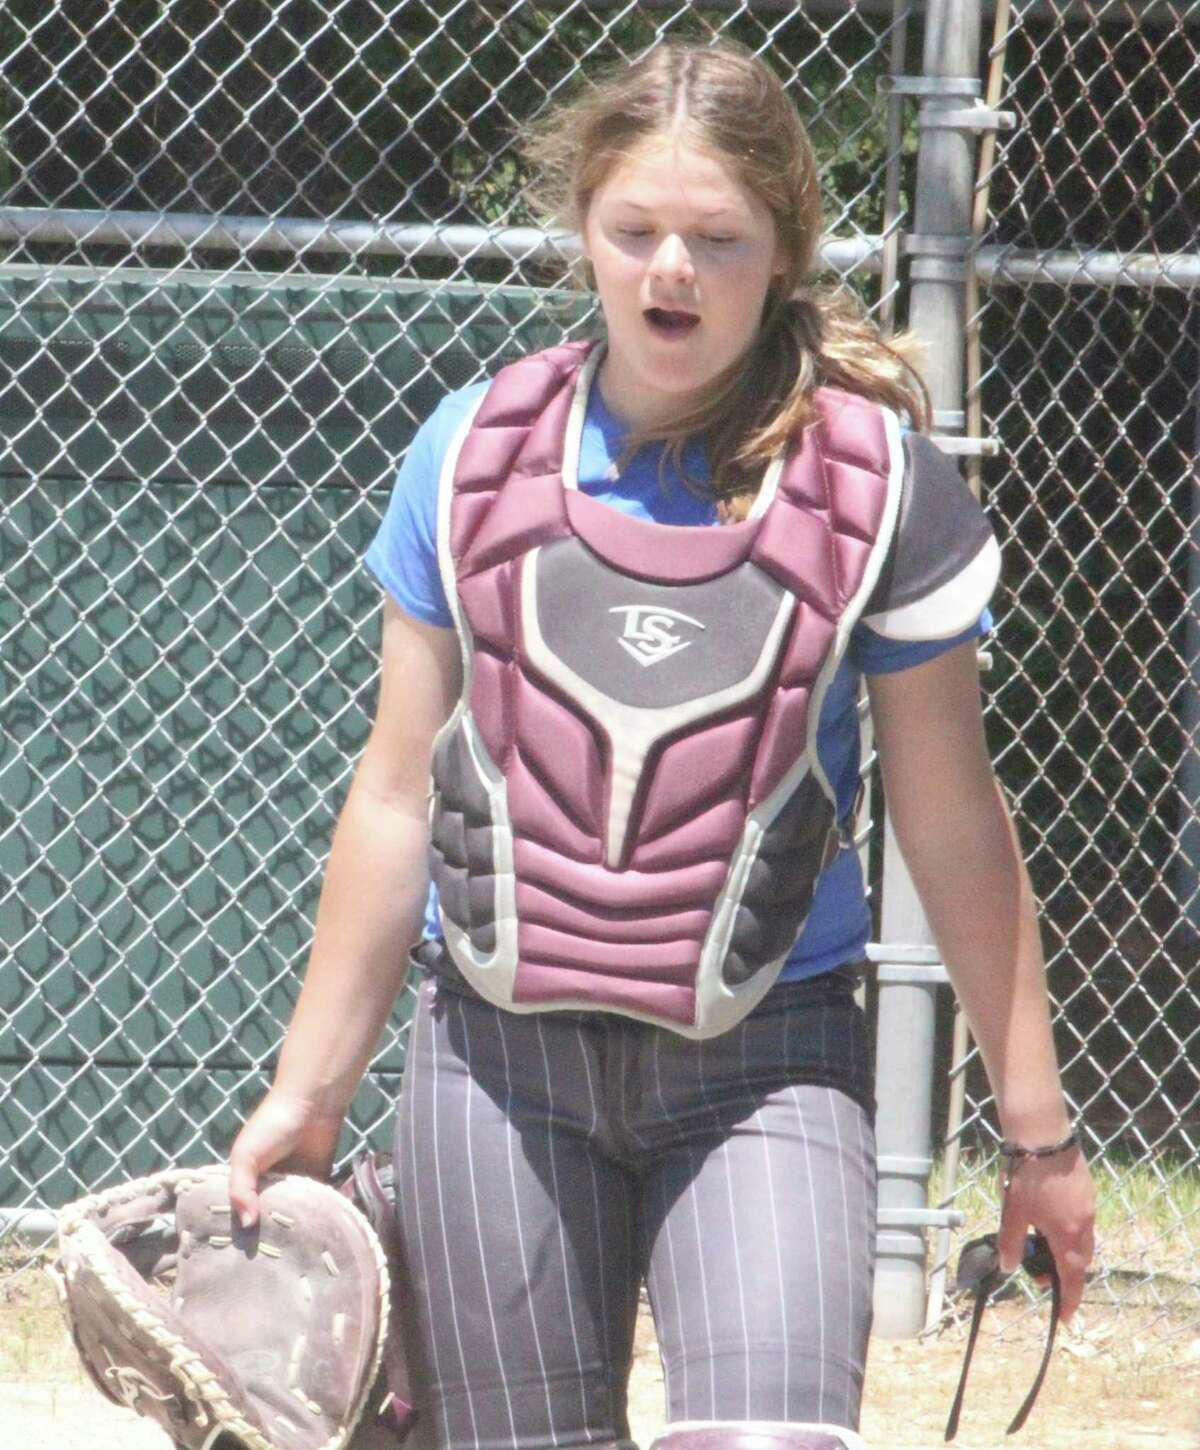 Catcher Ally Theunick had a strong season for Evart's softball team. (Pioneer file photo)